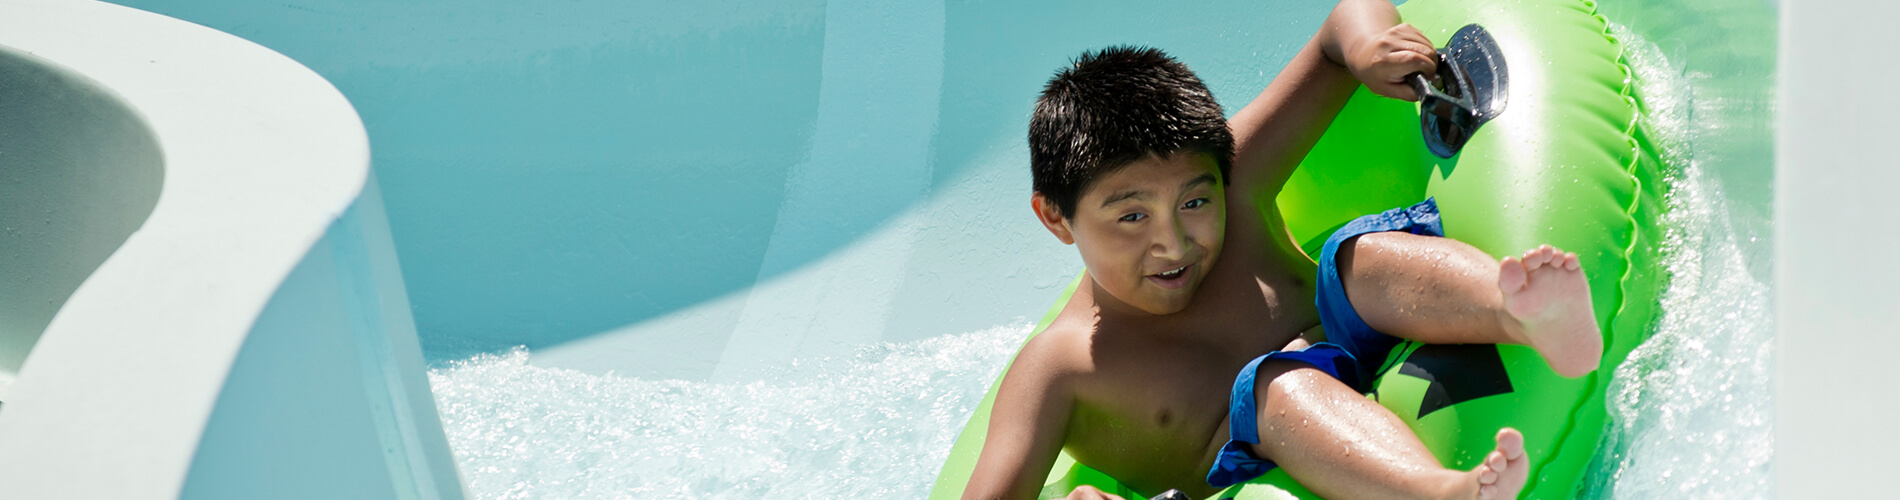 Jet Scream - Flume Slide at Water Country USA